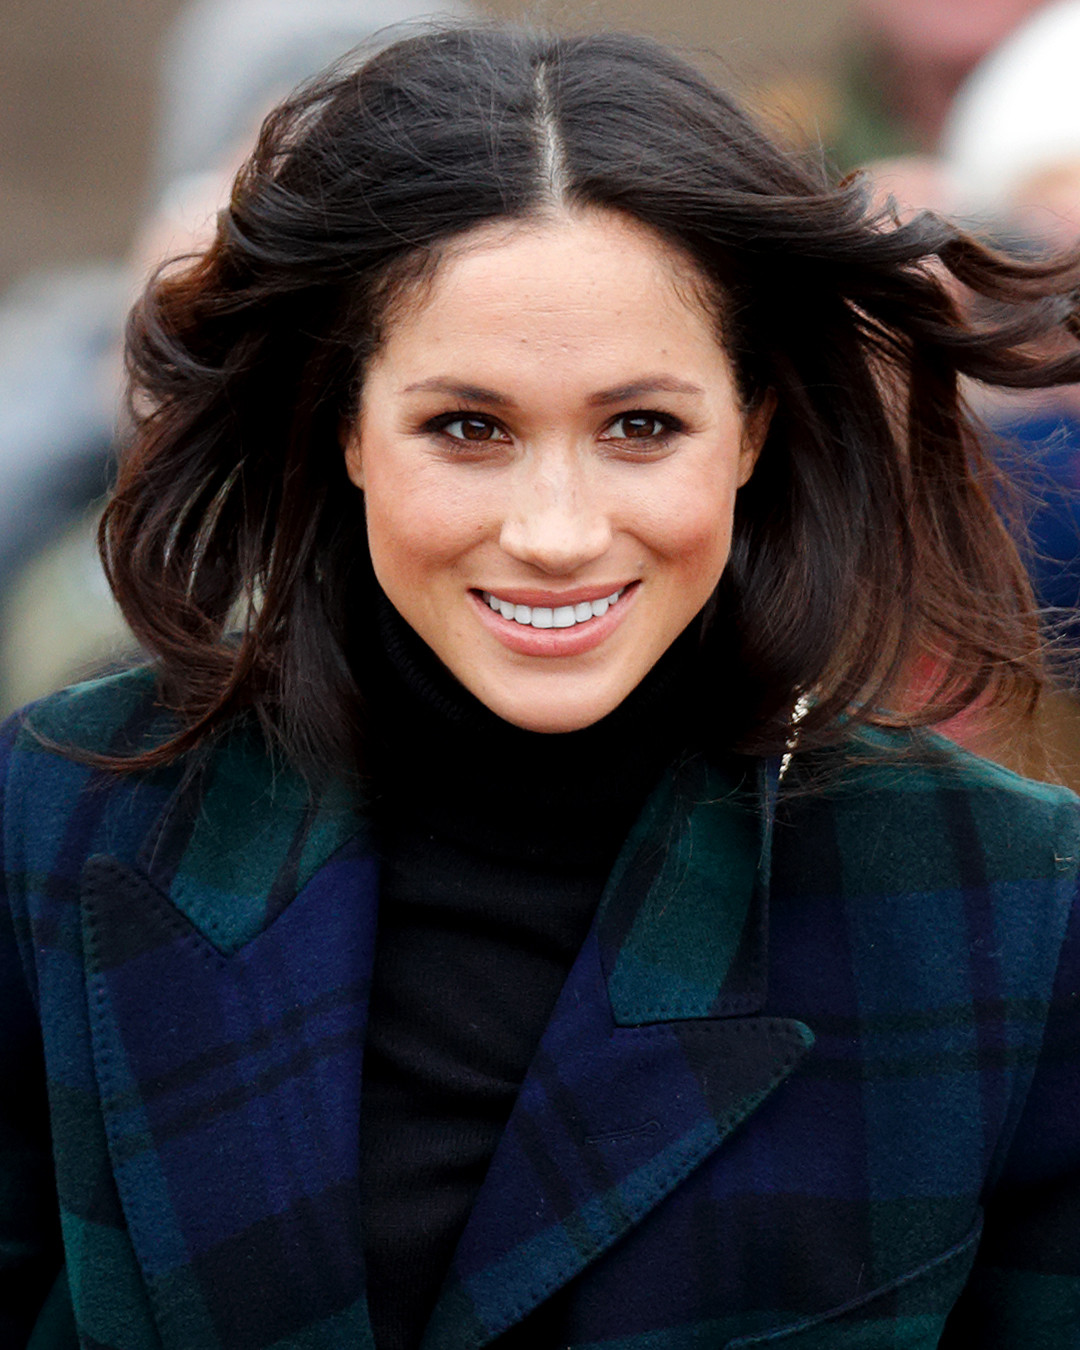 ESC: Meghan Markle, Waves